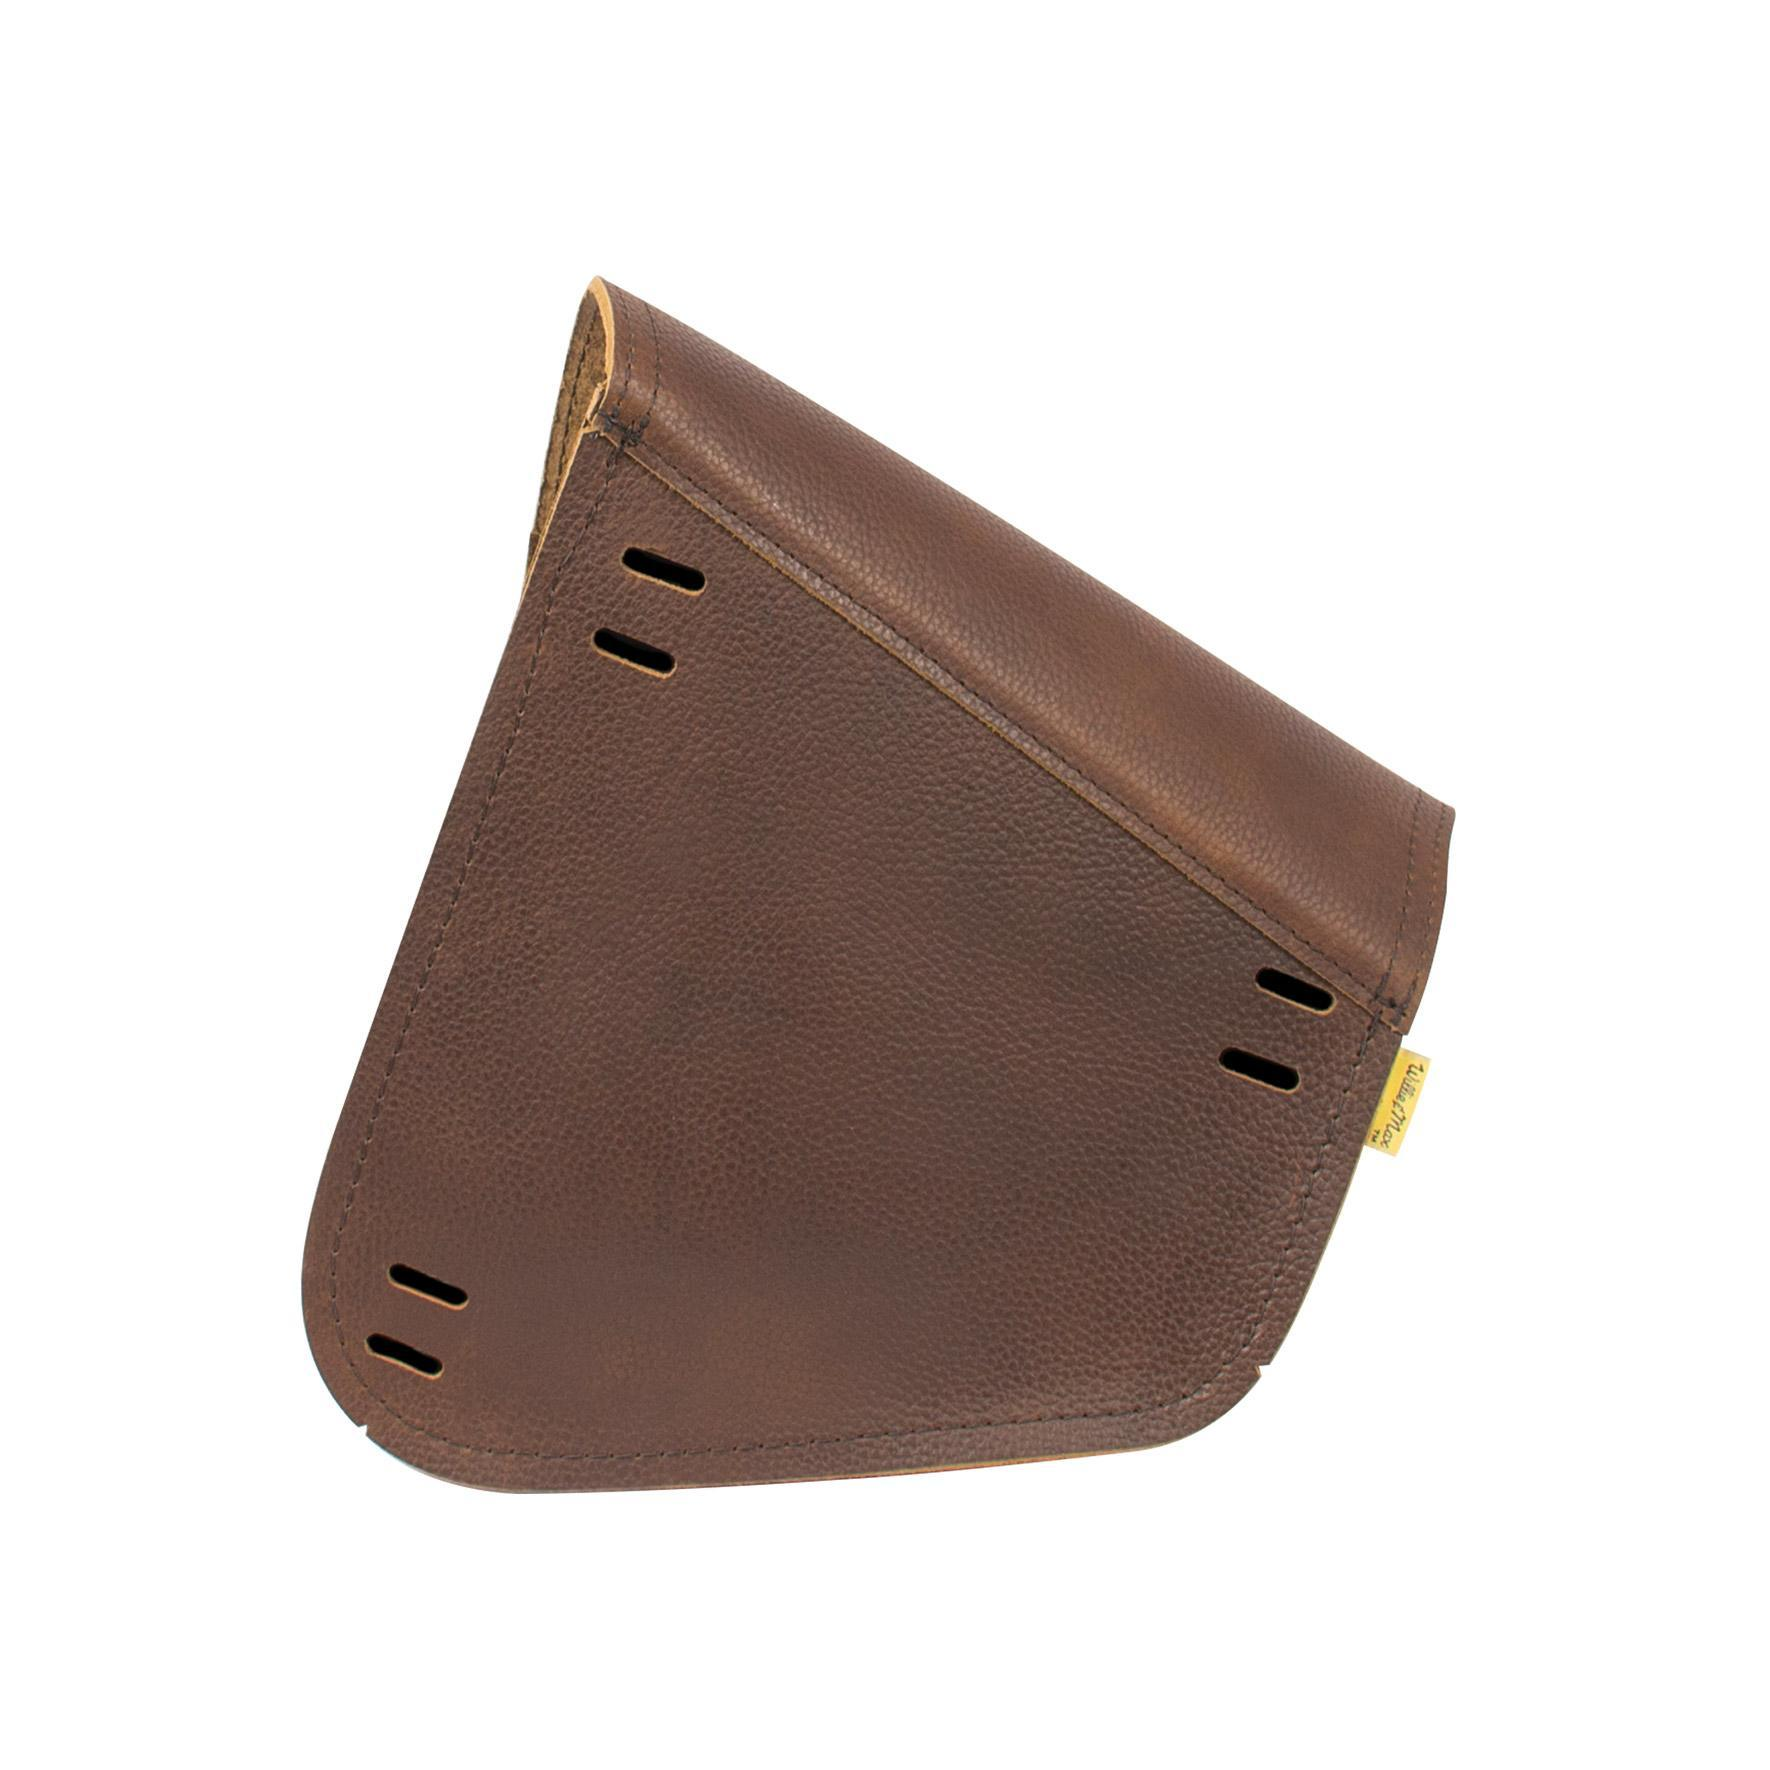 Willie & Max Limited Edition Brown Leather Swingarm Bag - Dual Shock Back View